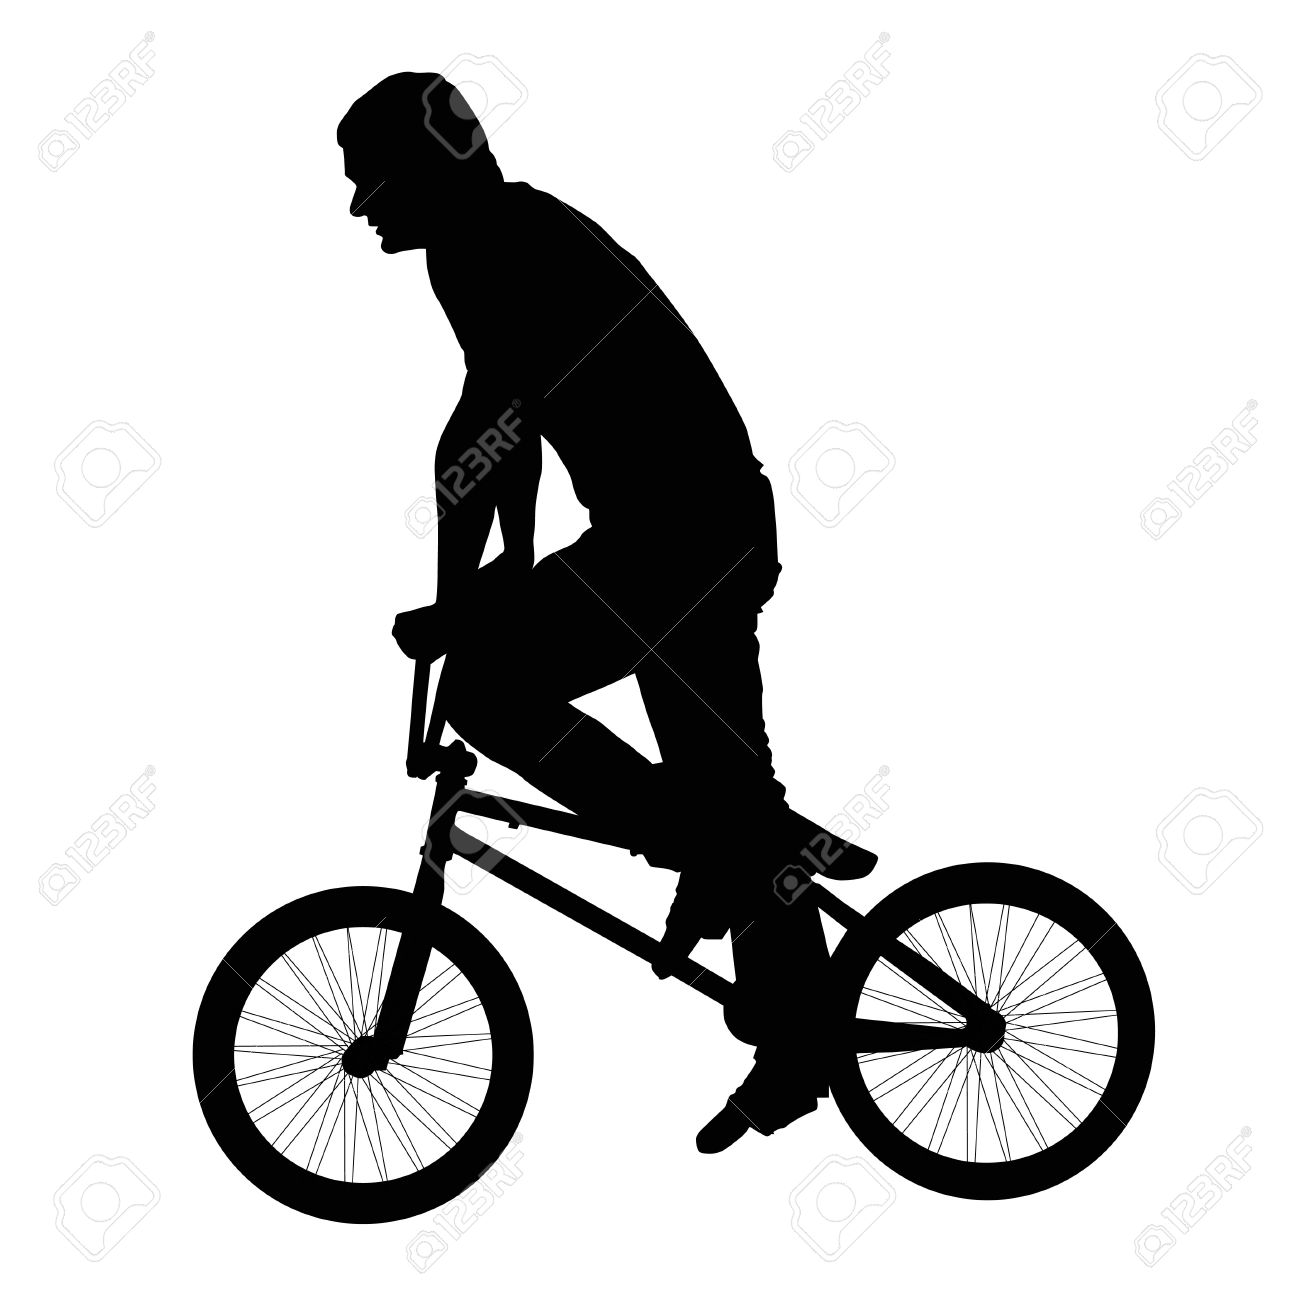 Bmx bicycle clipart black and white.